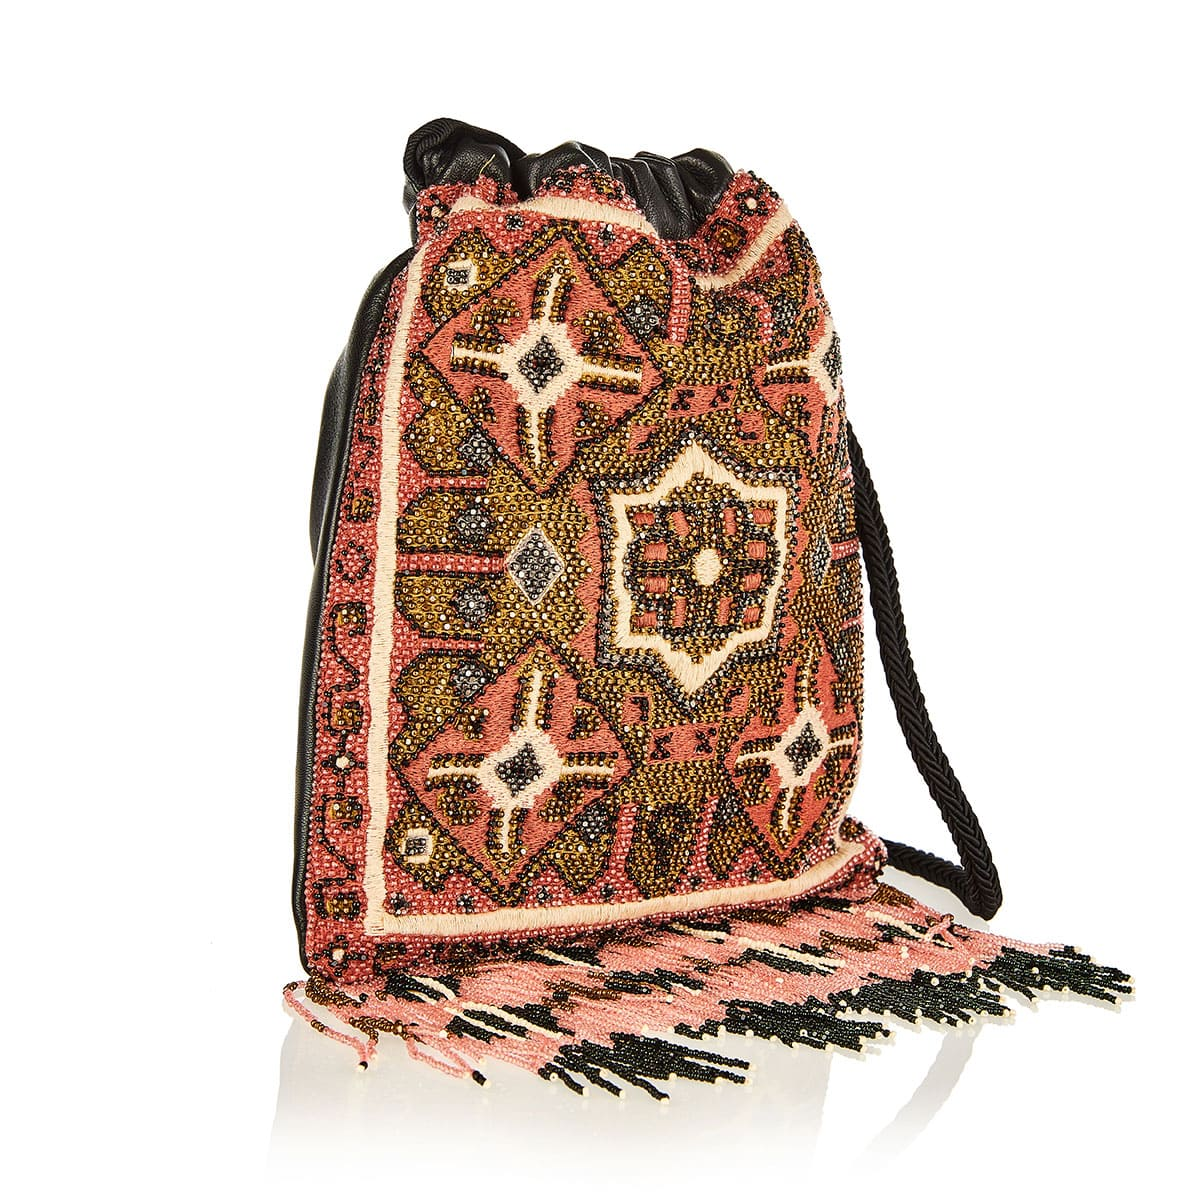 Embroidered leather pouch with beads